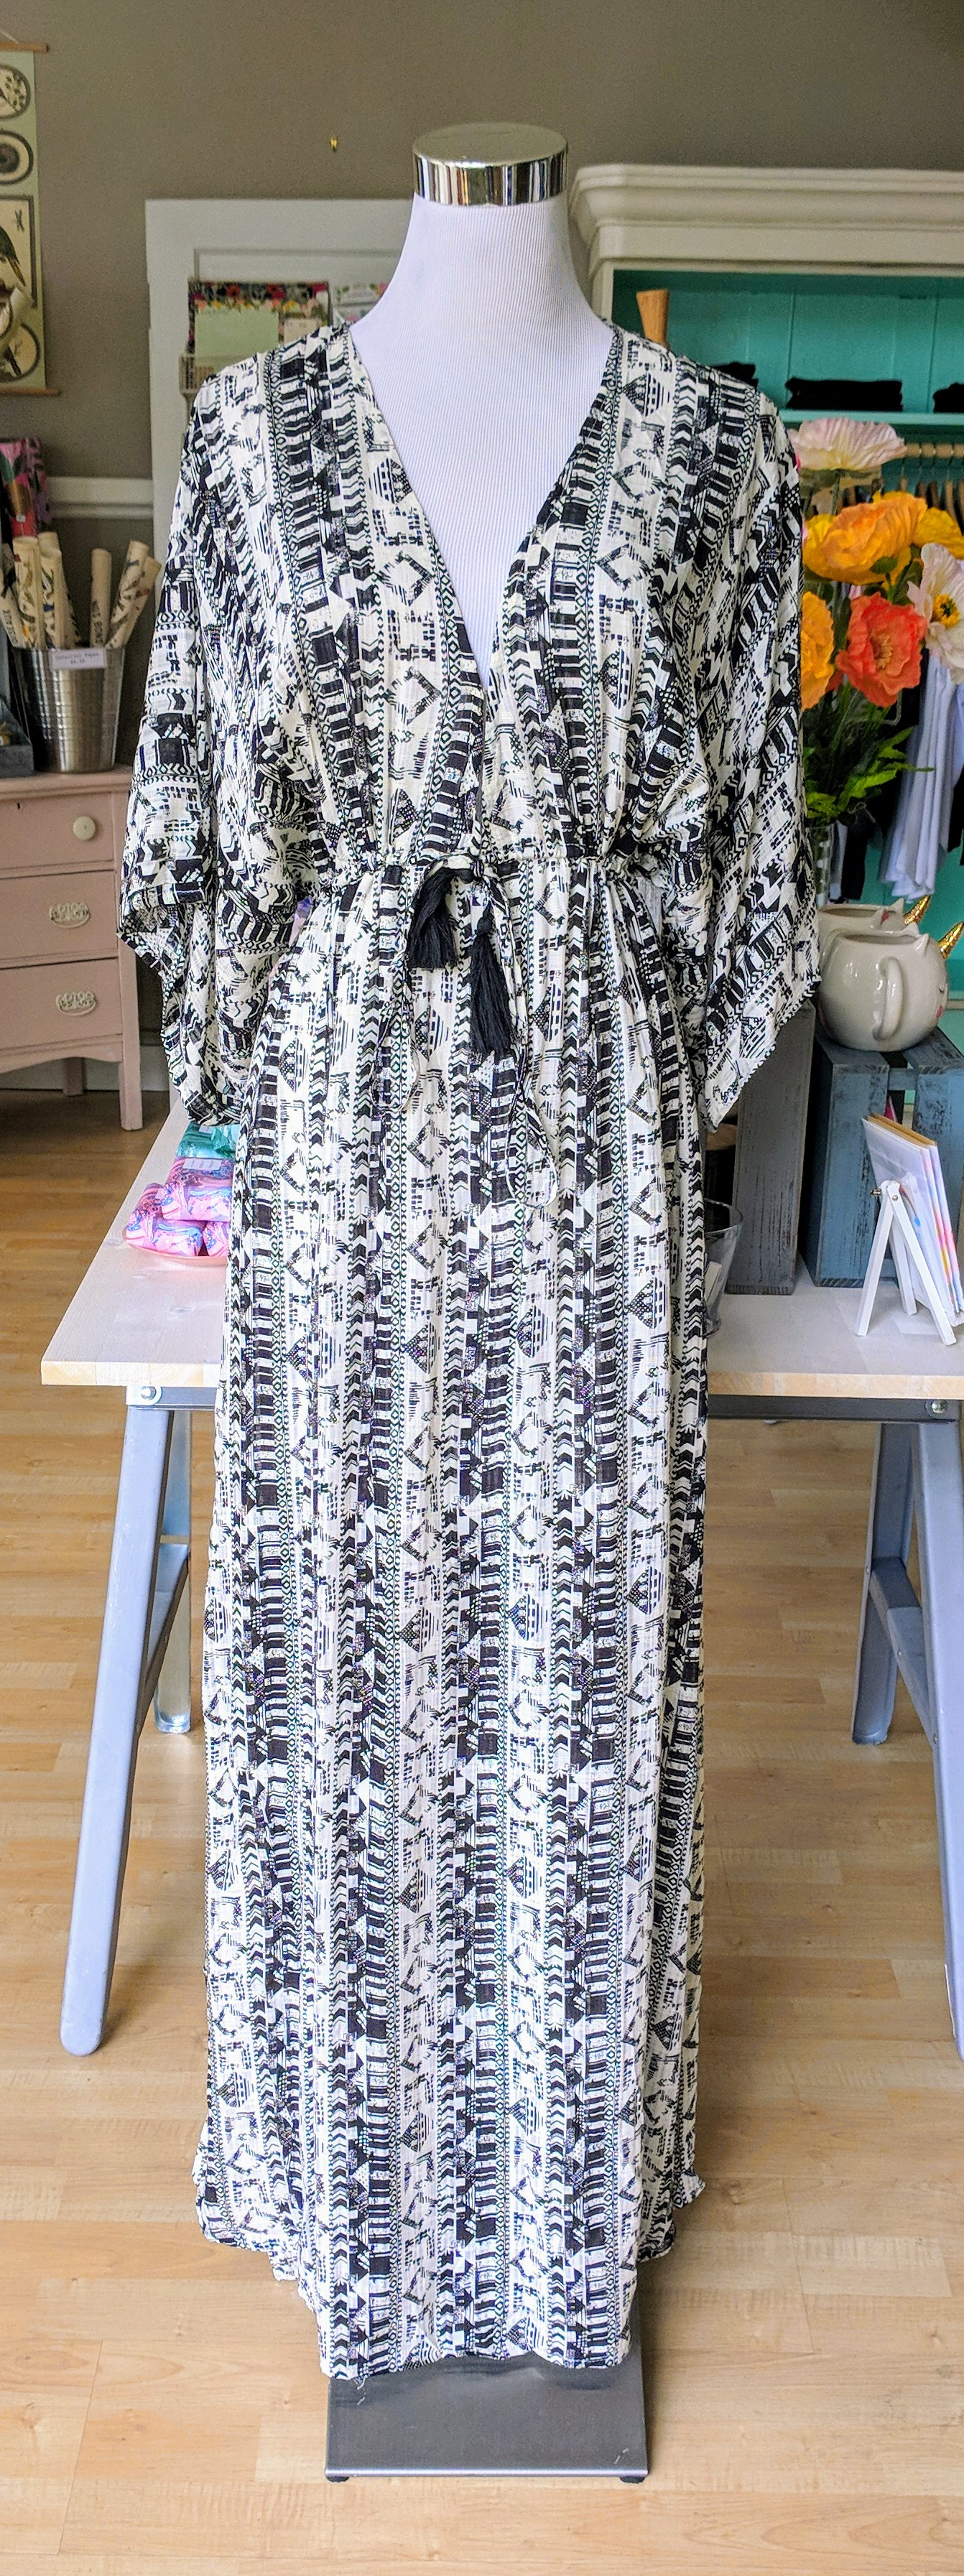 Black and white Aztec print maxi dress with tie tassels on waist.